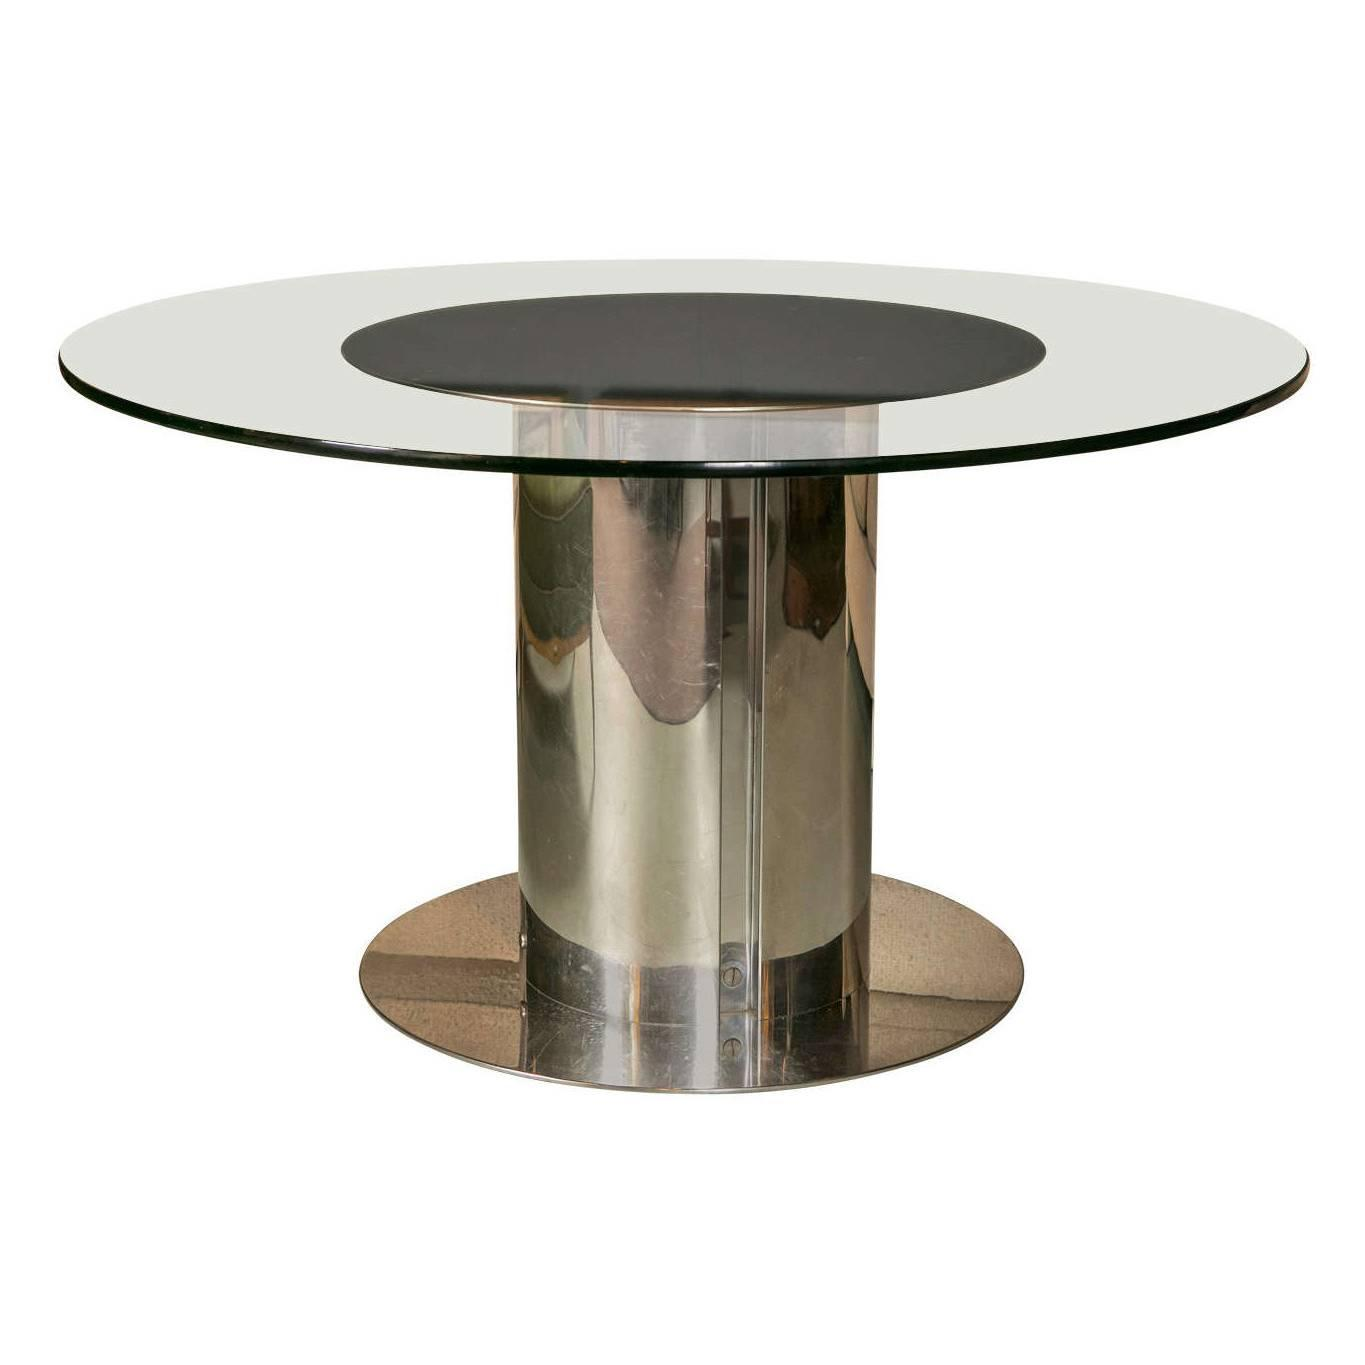 1980s chrome and glass round dining table for sale at 1stdibs for Glass dining table